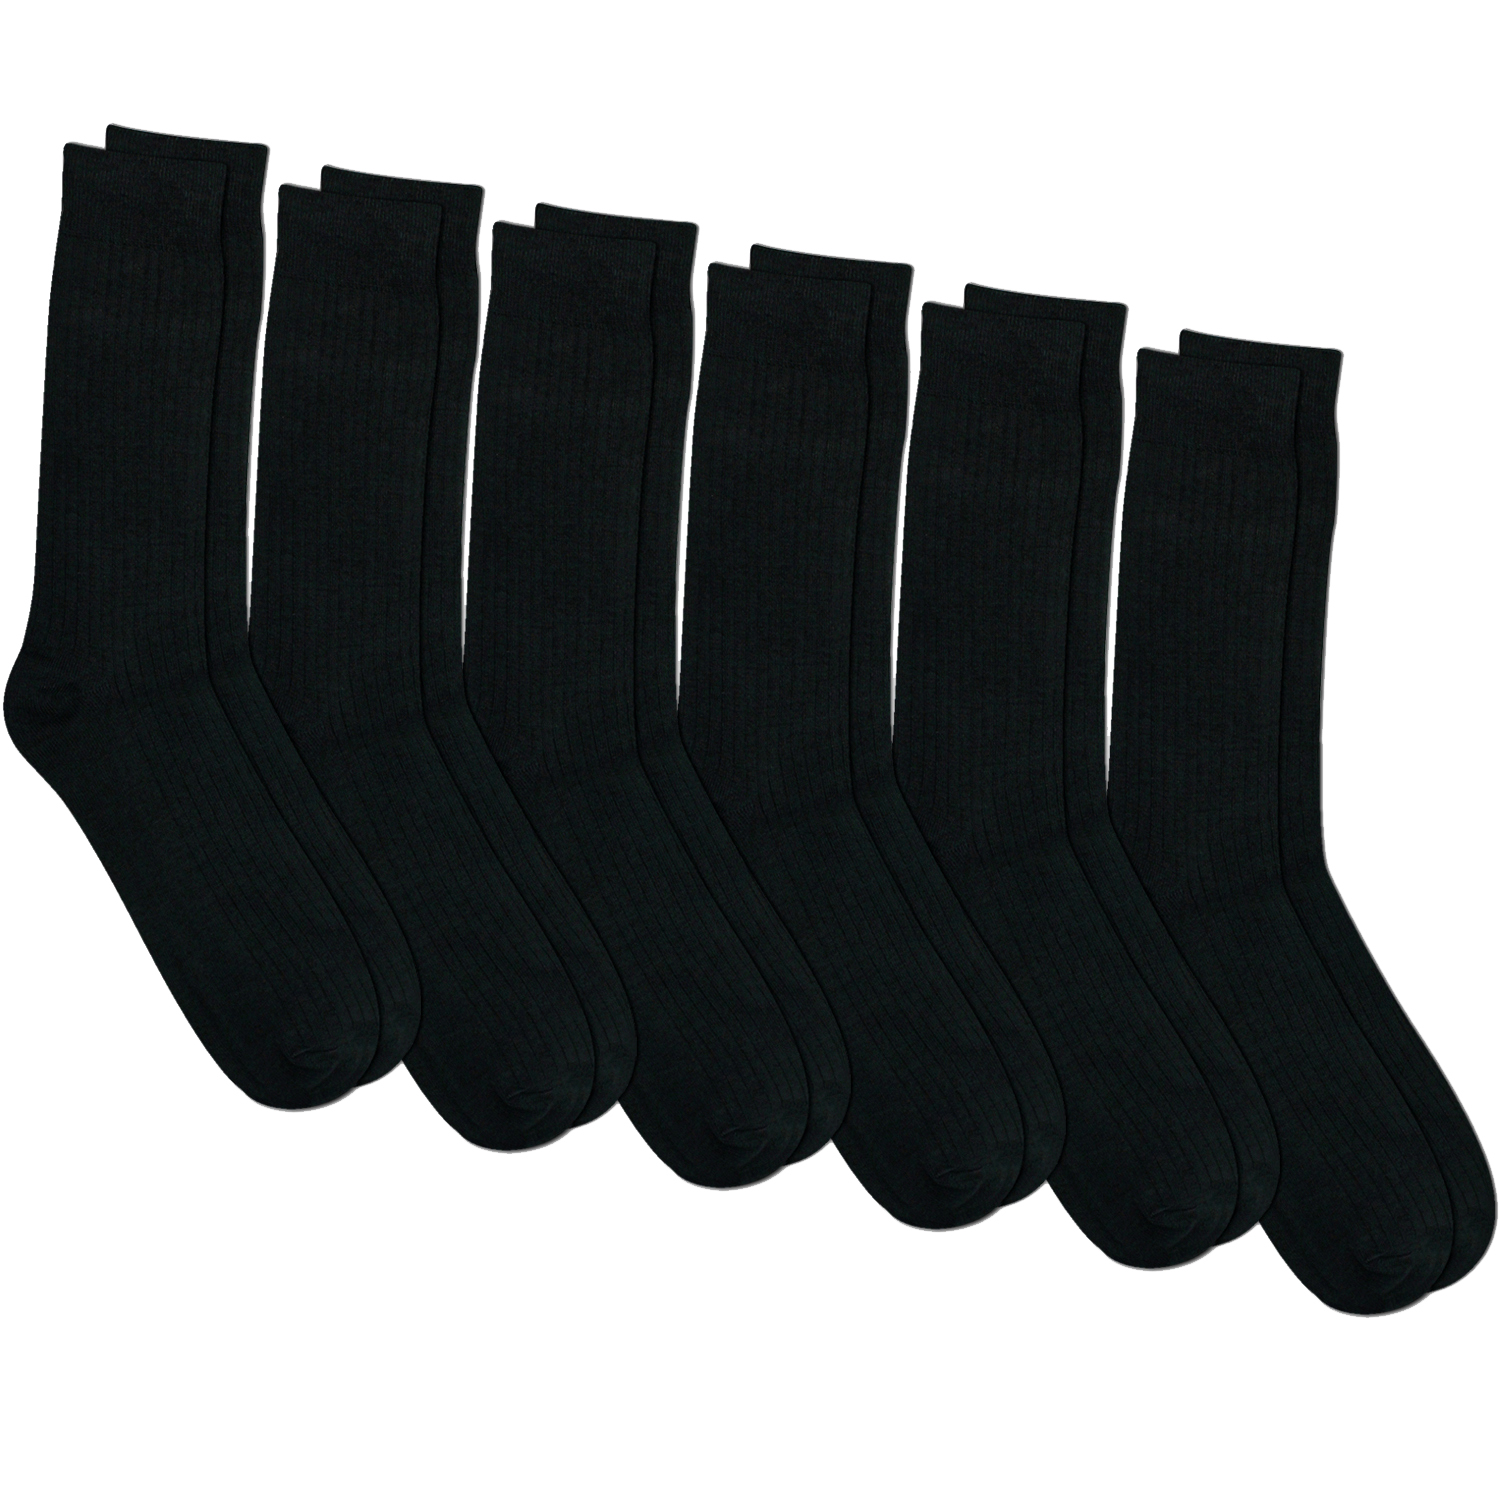 Mens All Black Crew Length Dress Socks 6 Pack